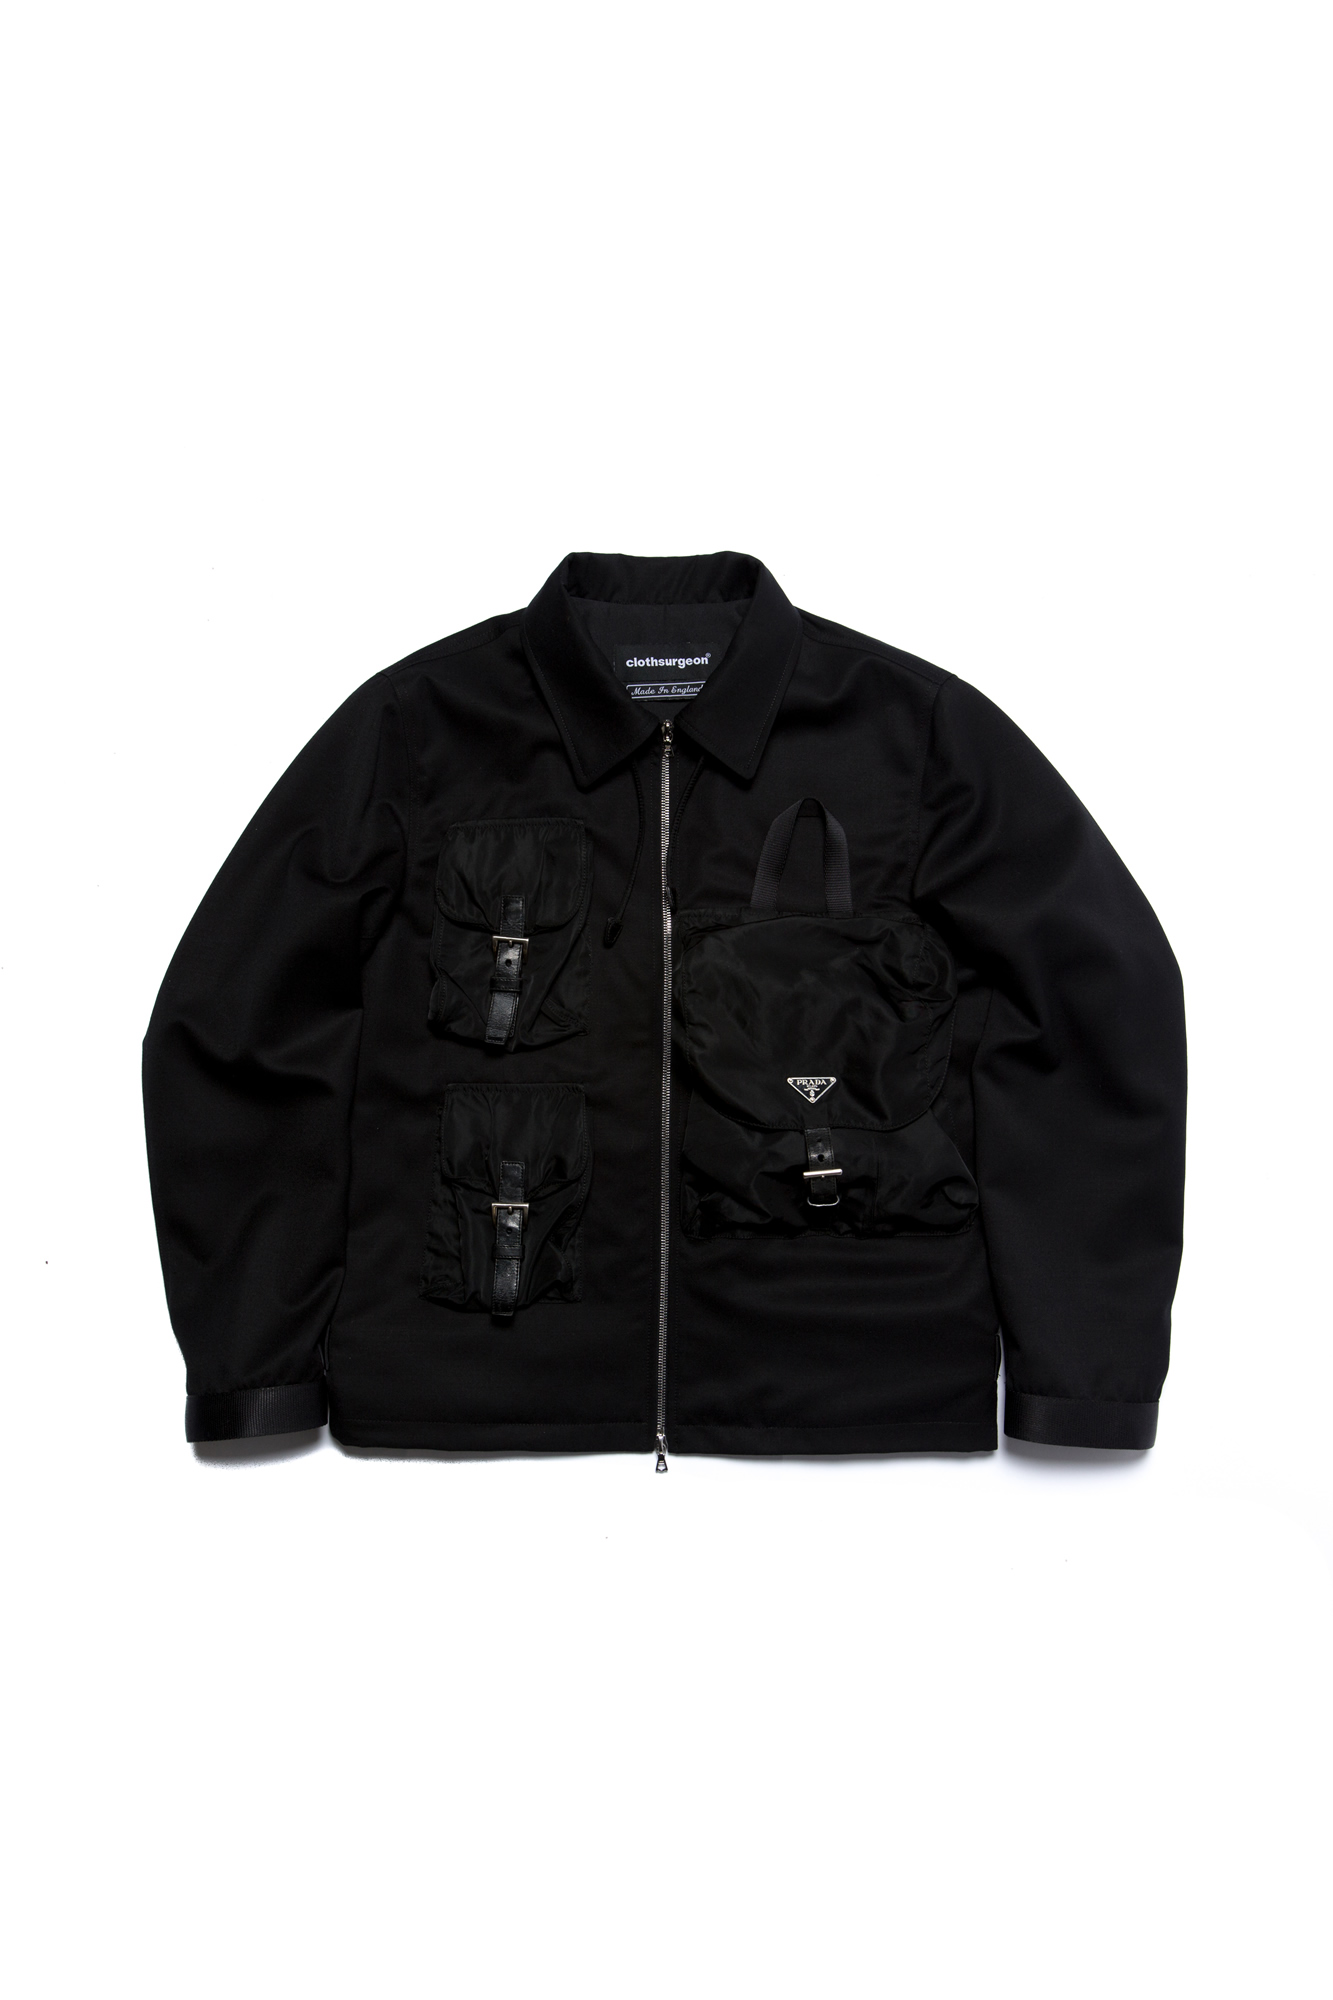 clothsurgeon Crafts Bomber Jacket From a 90s Prada Backpack